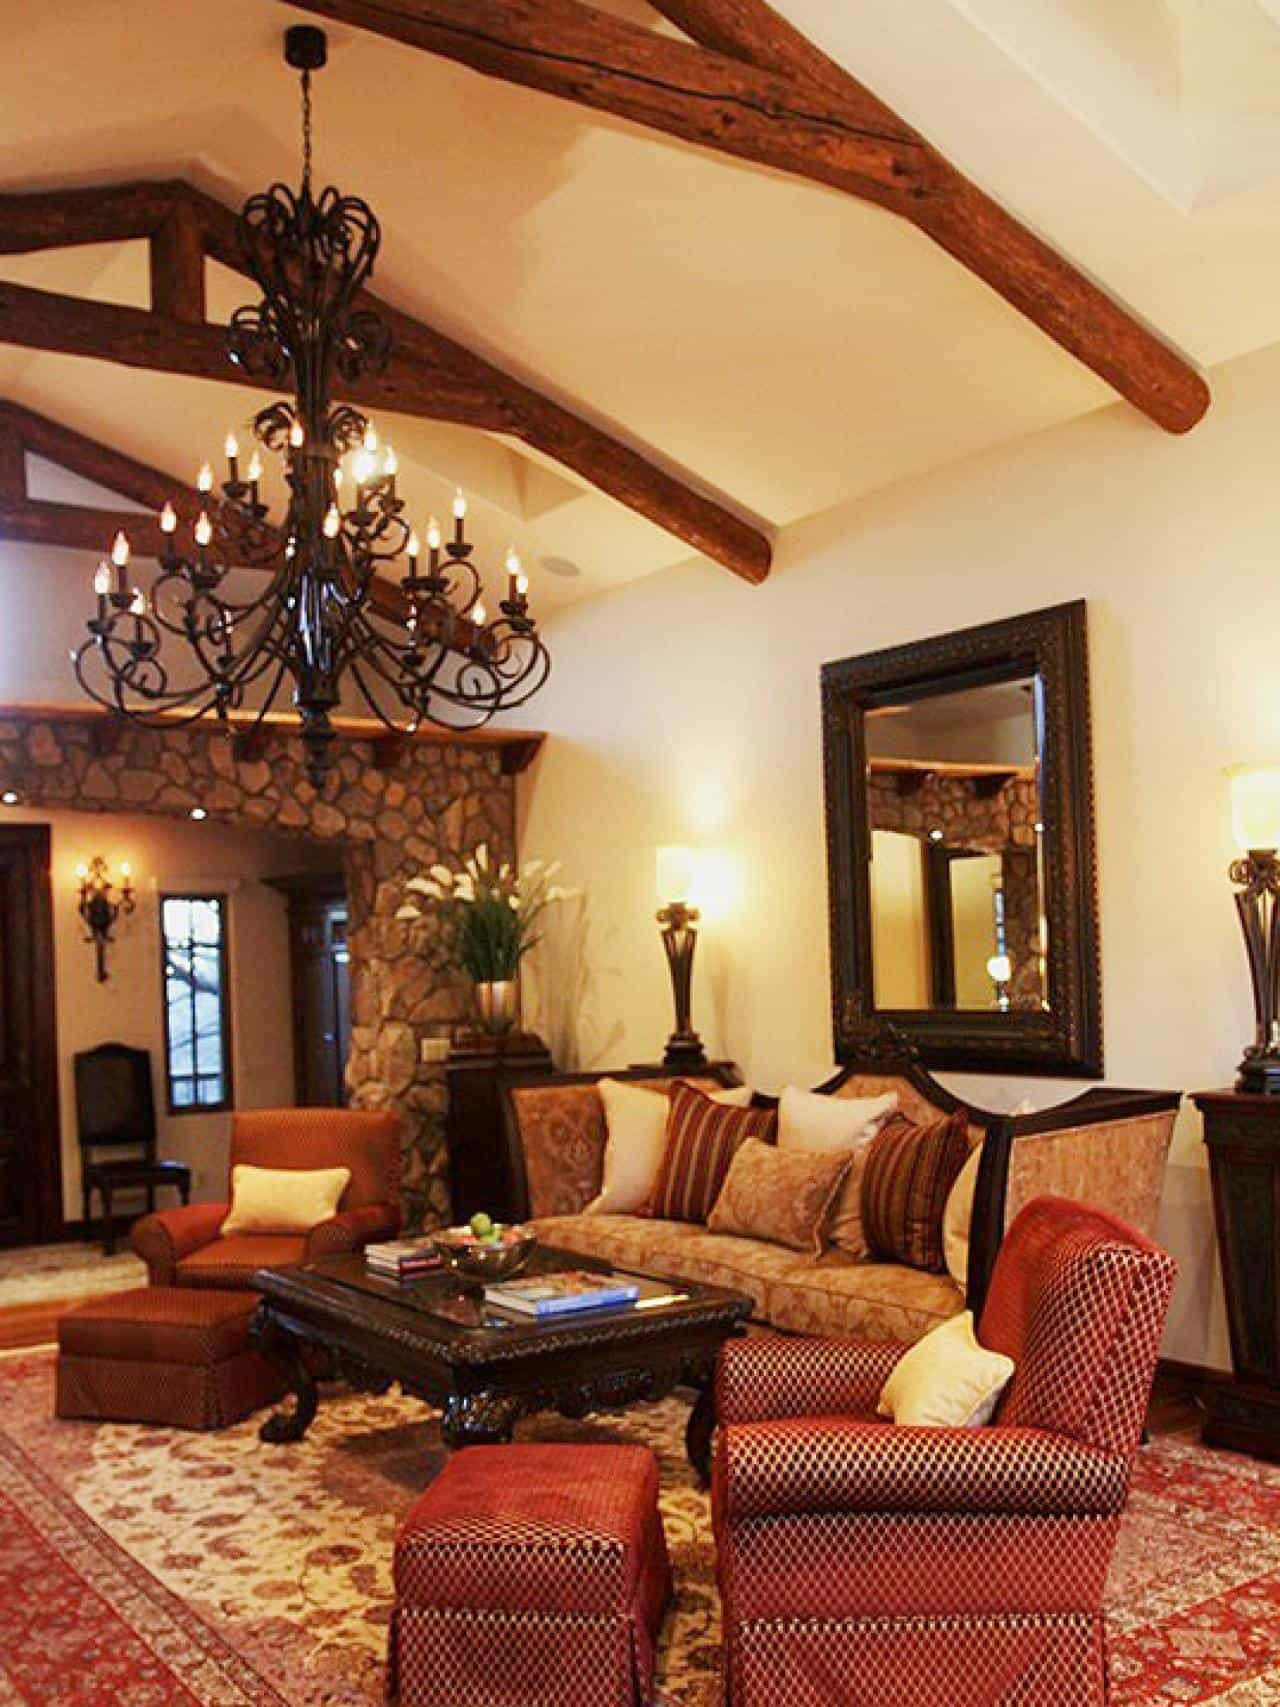 Living Room With Large Wrough Iron Chandelier And Spanish Style Furniture Dashing